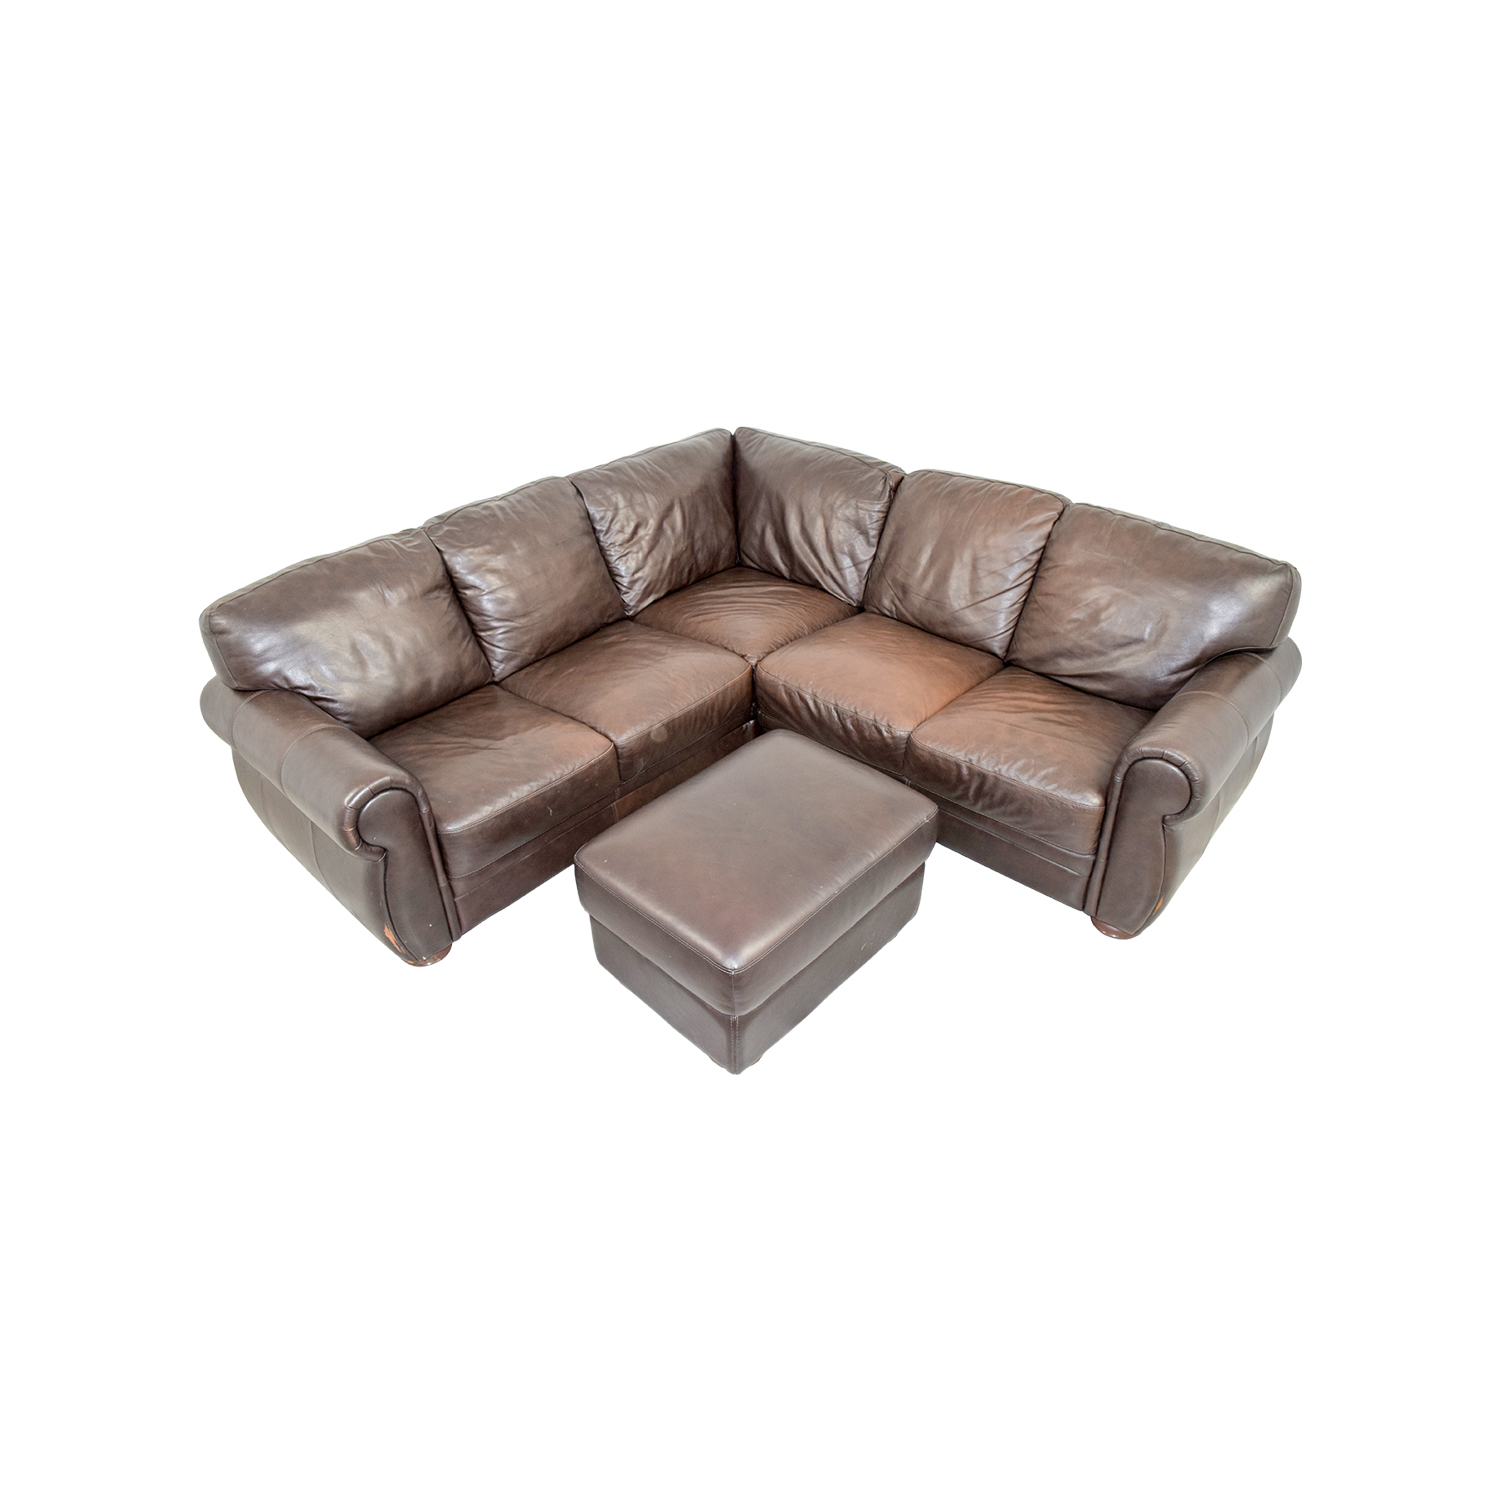 Chateau Dax Brown Leather Sectional with Ottoman sale